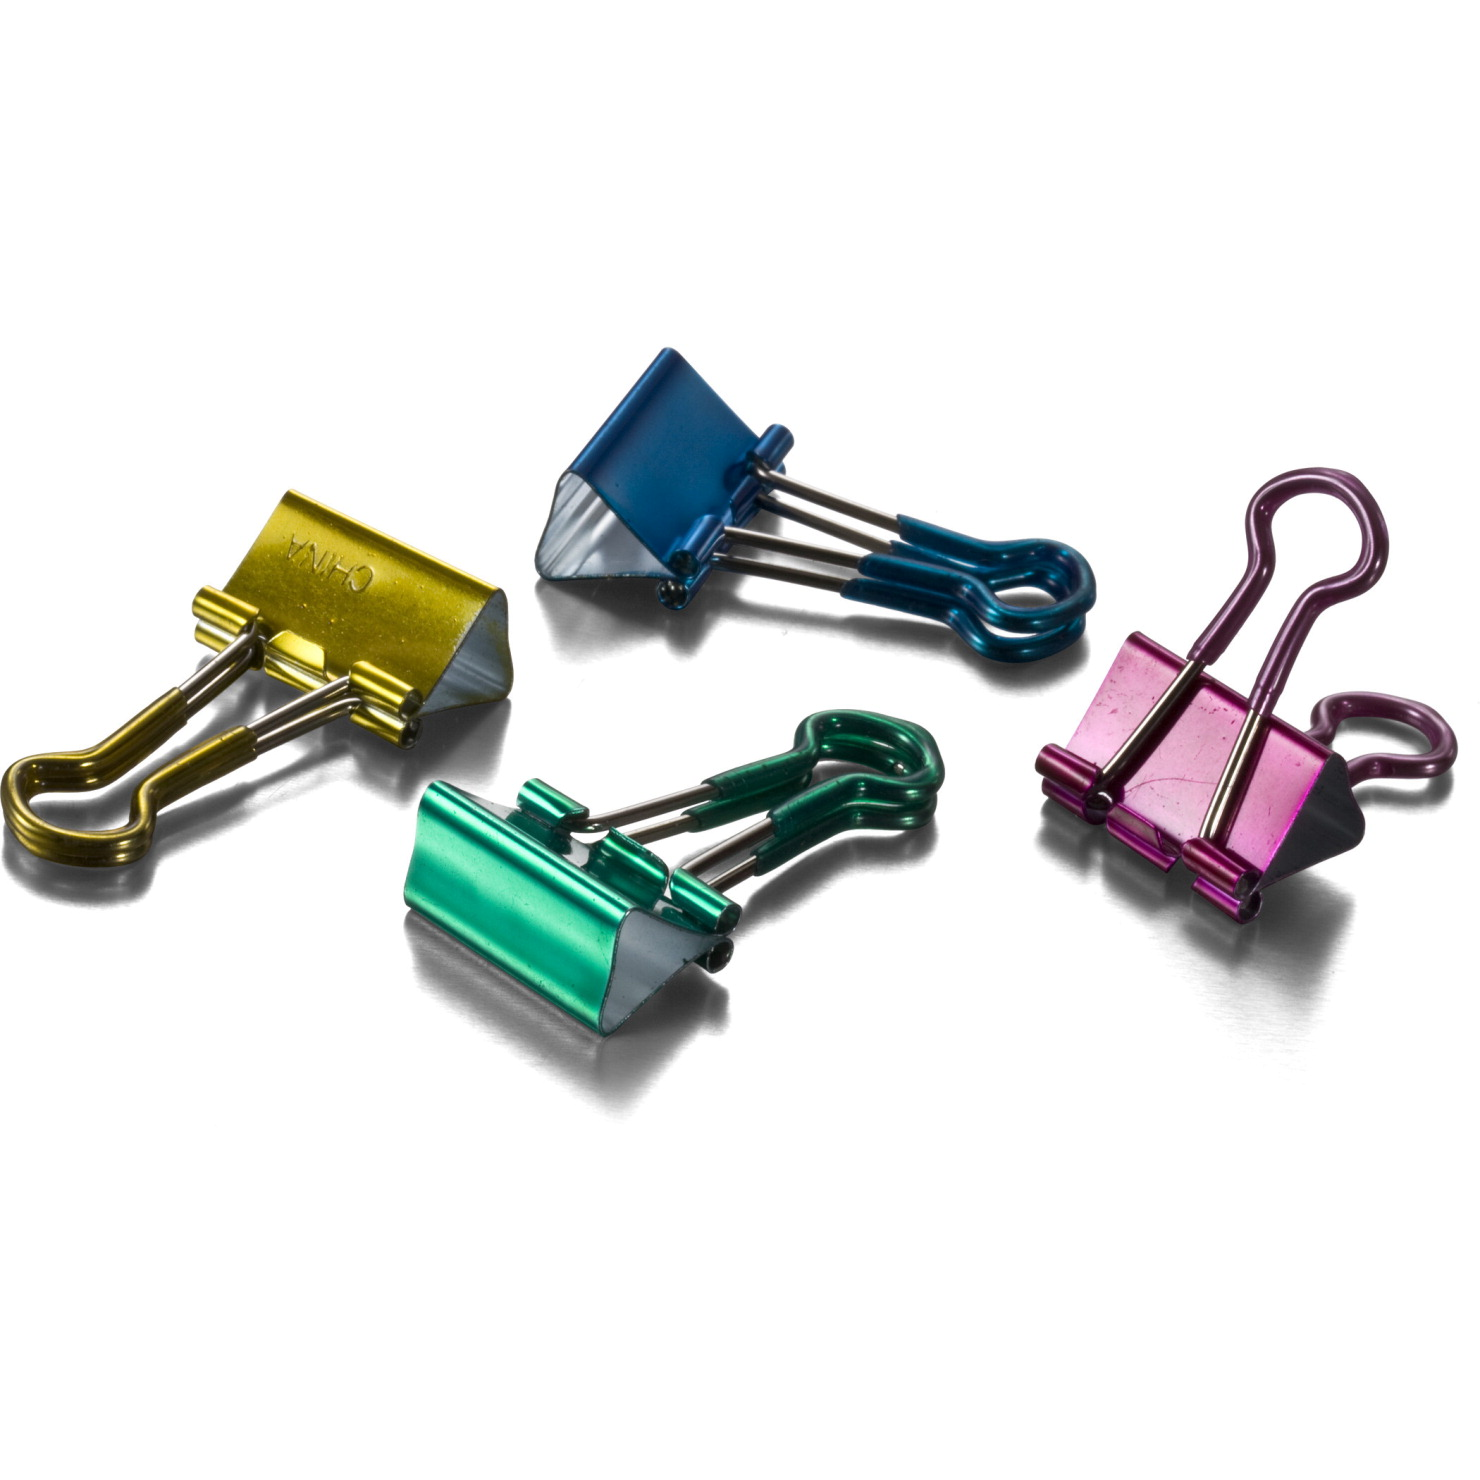 Officemate Easy Grip Binder Clips, Assorted Colors